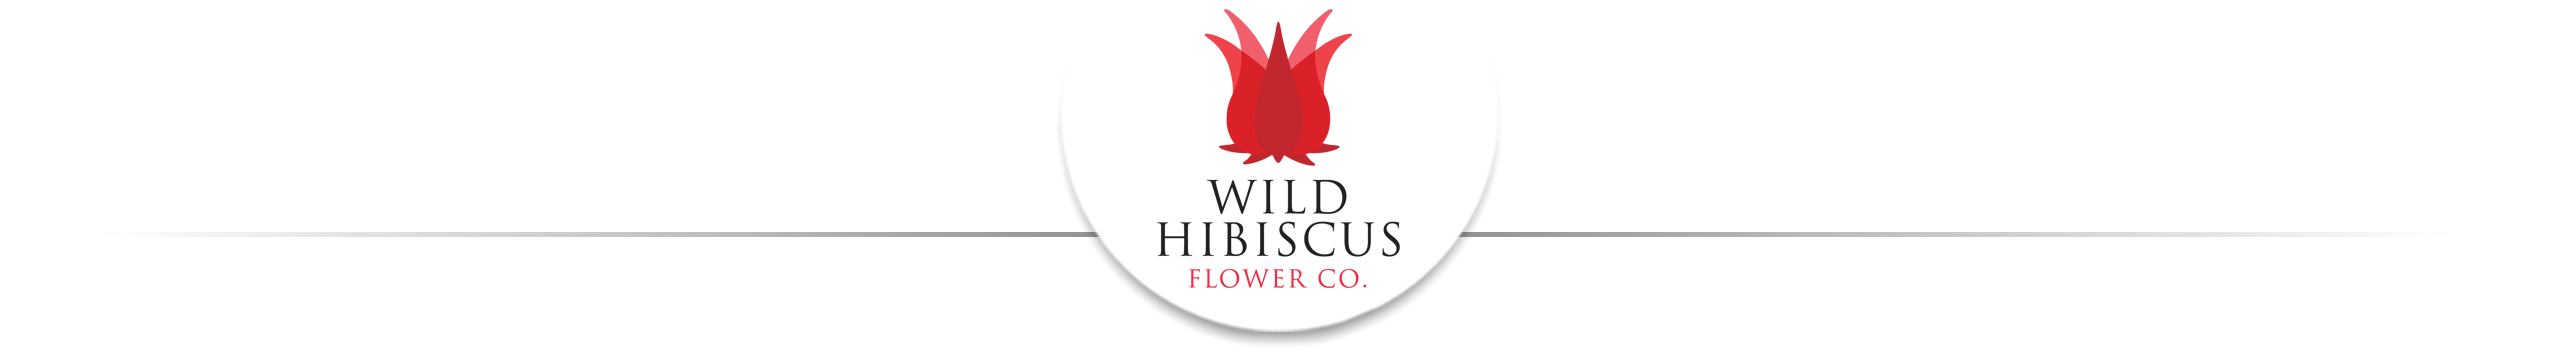 Wild Hibiscus Flower Co